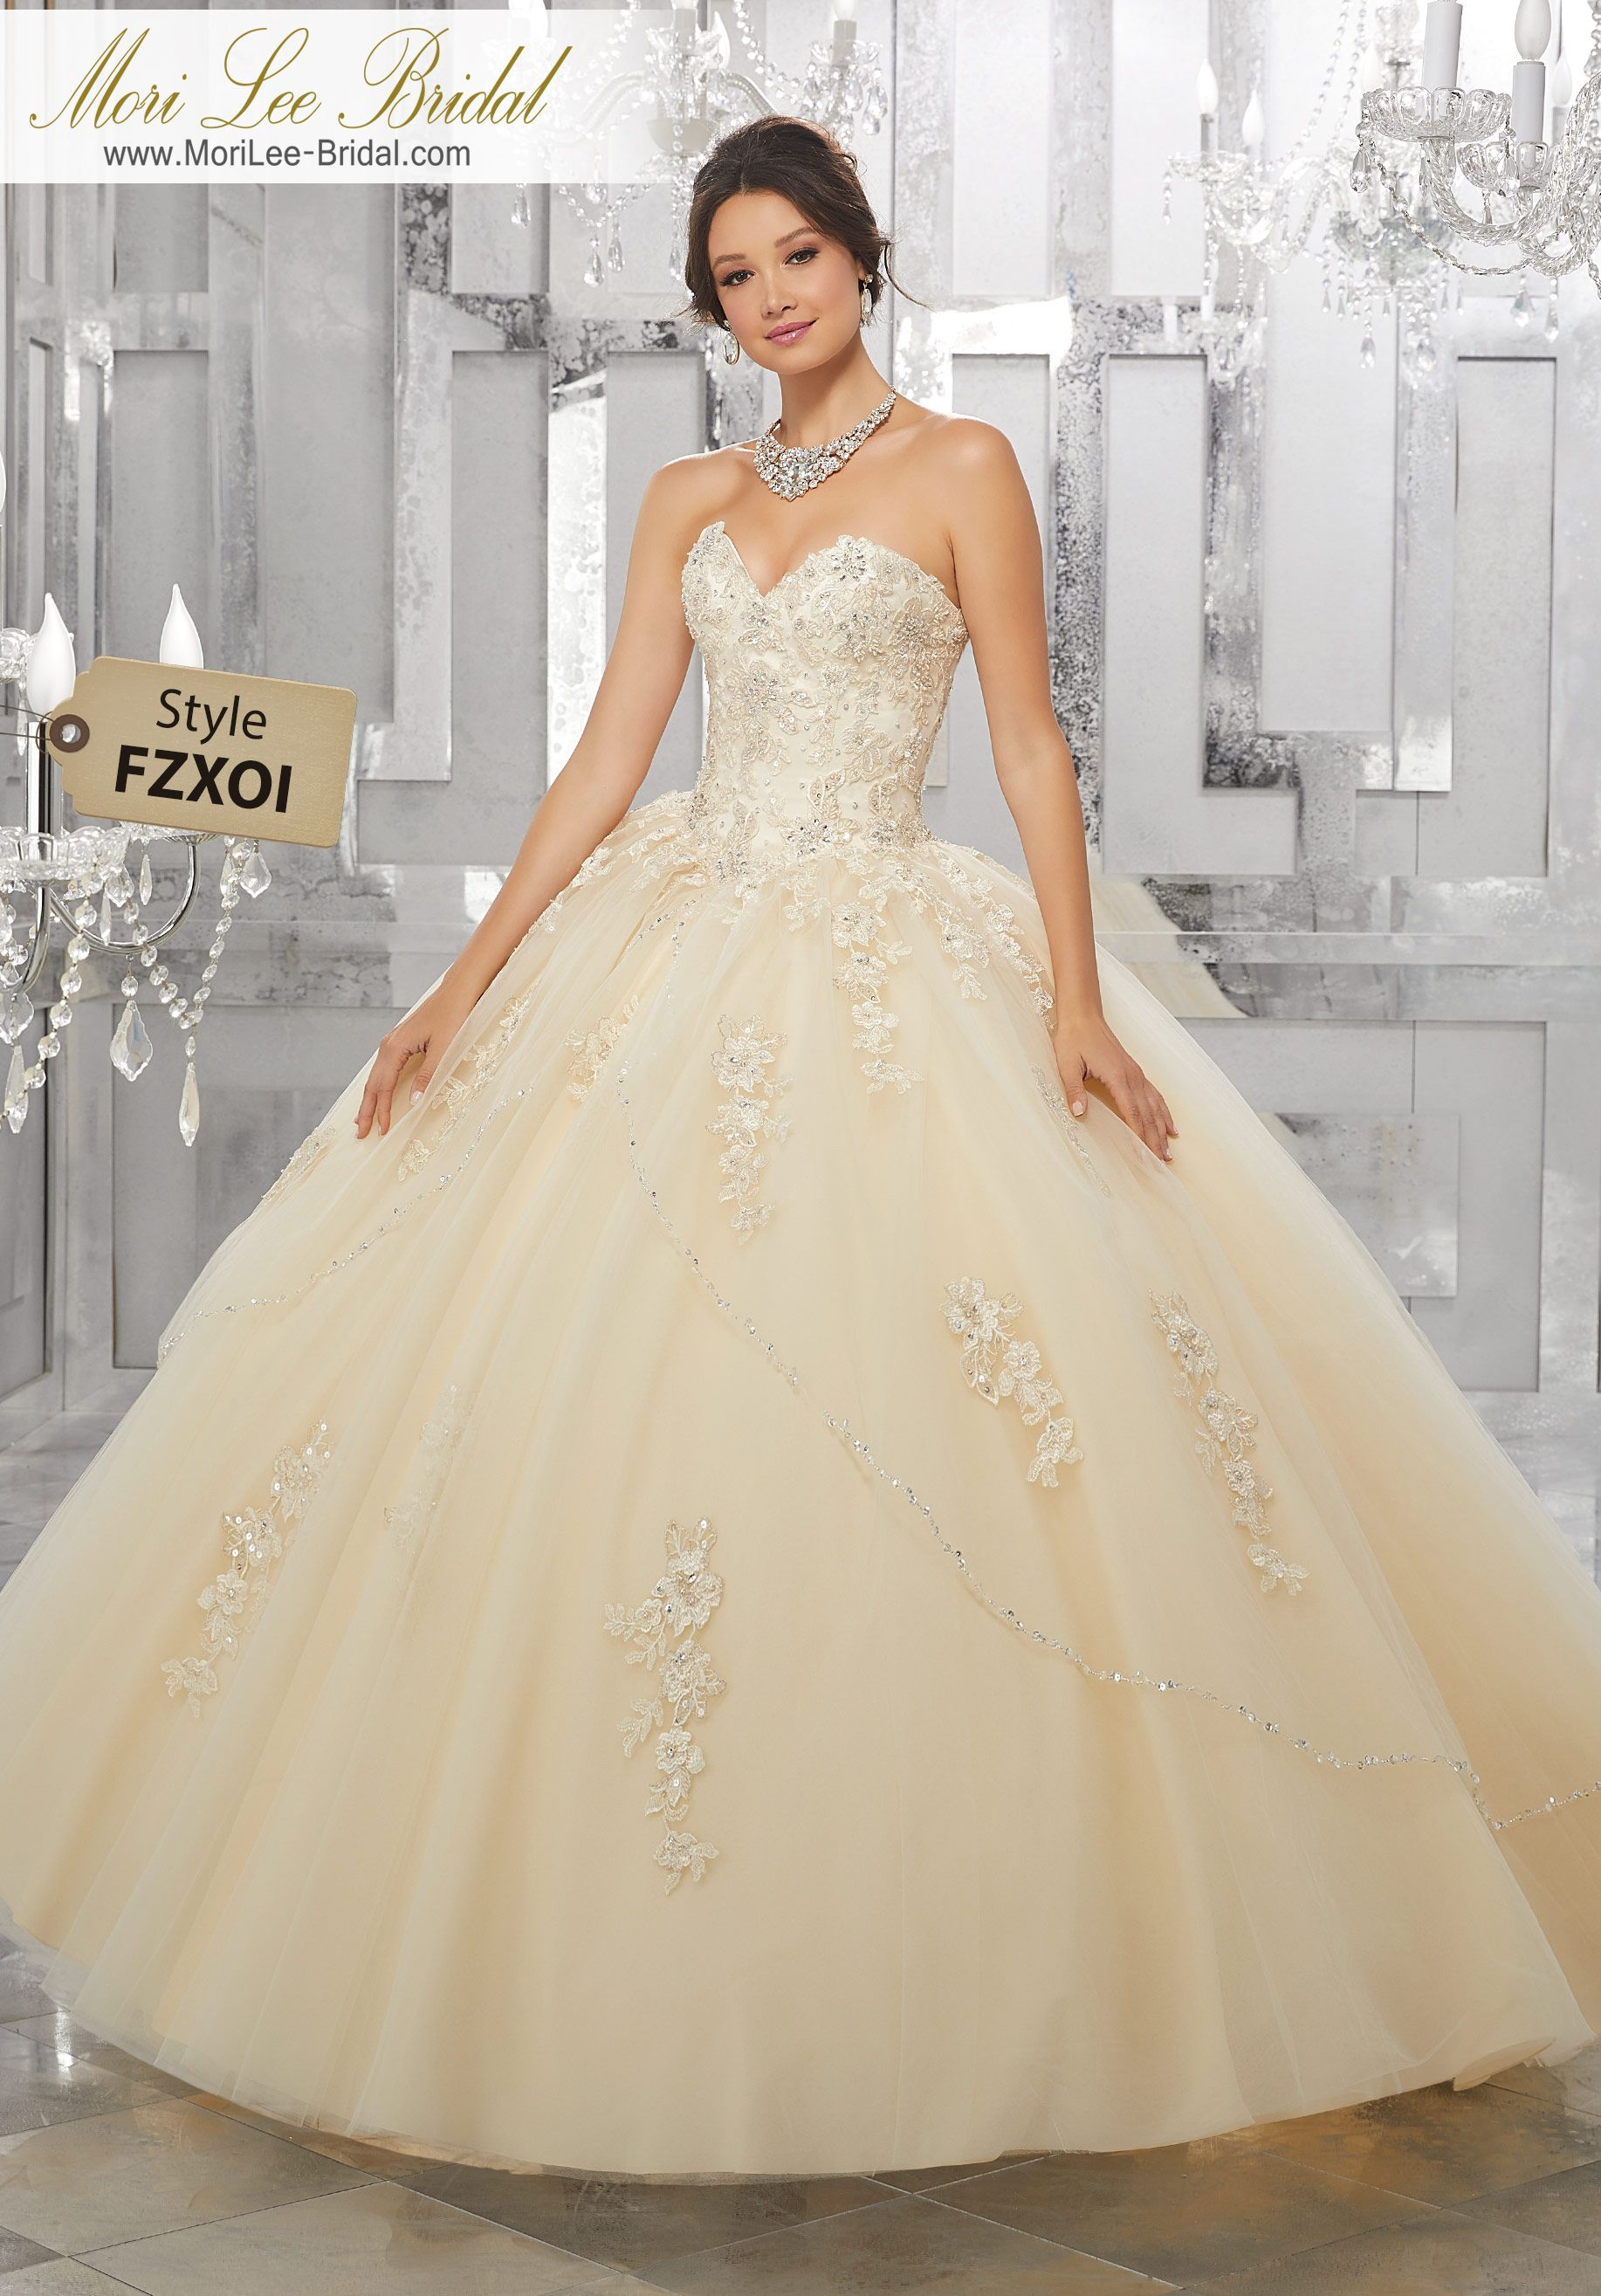 Style fzxoi crystal beaded embroidered lace appliqués on a princess